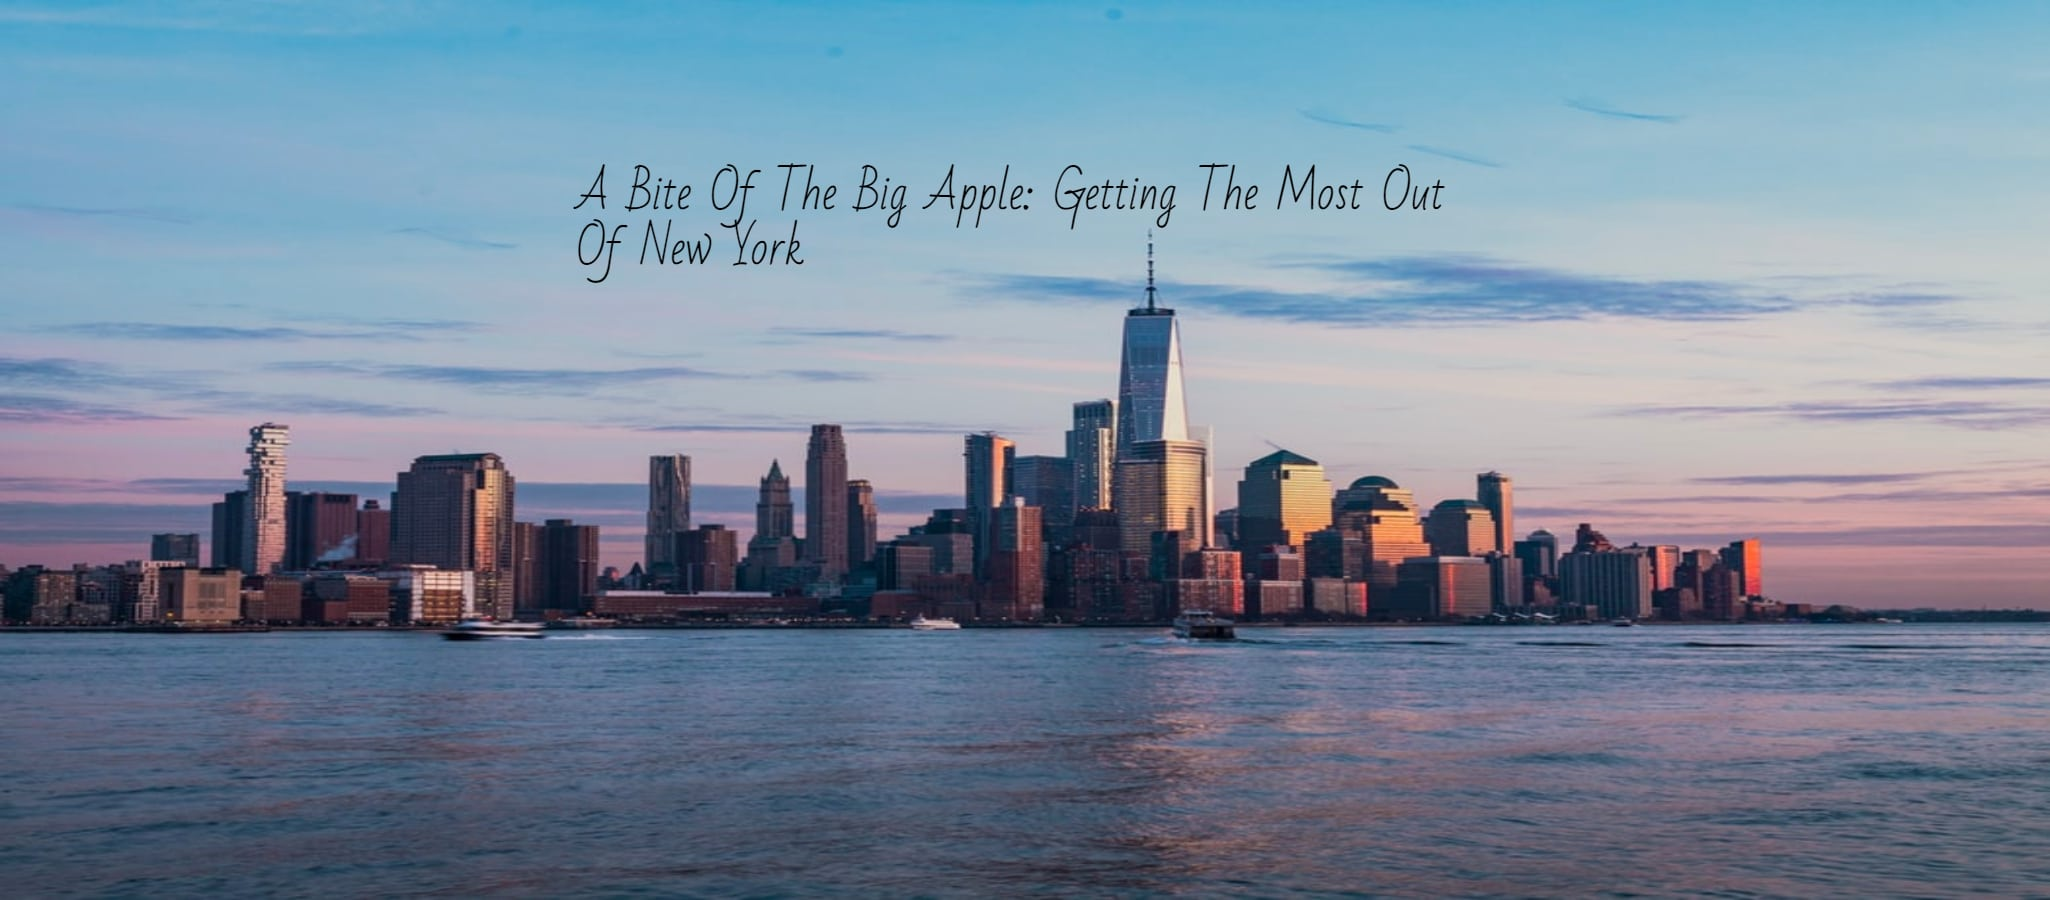 A Bite Of The Big Apple: Getting The Most Out Of New York